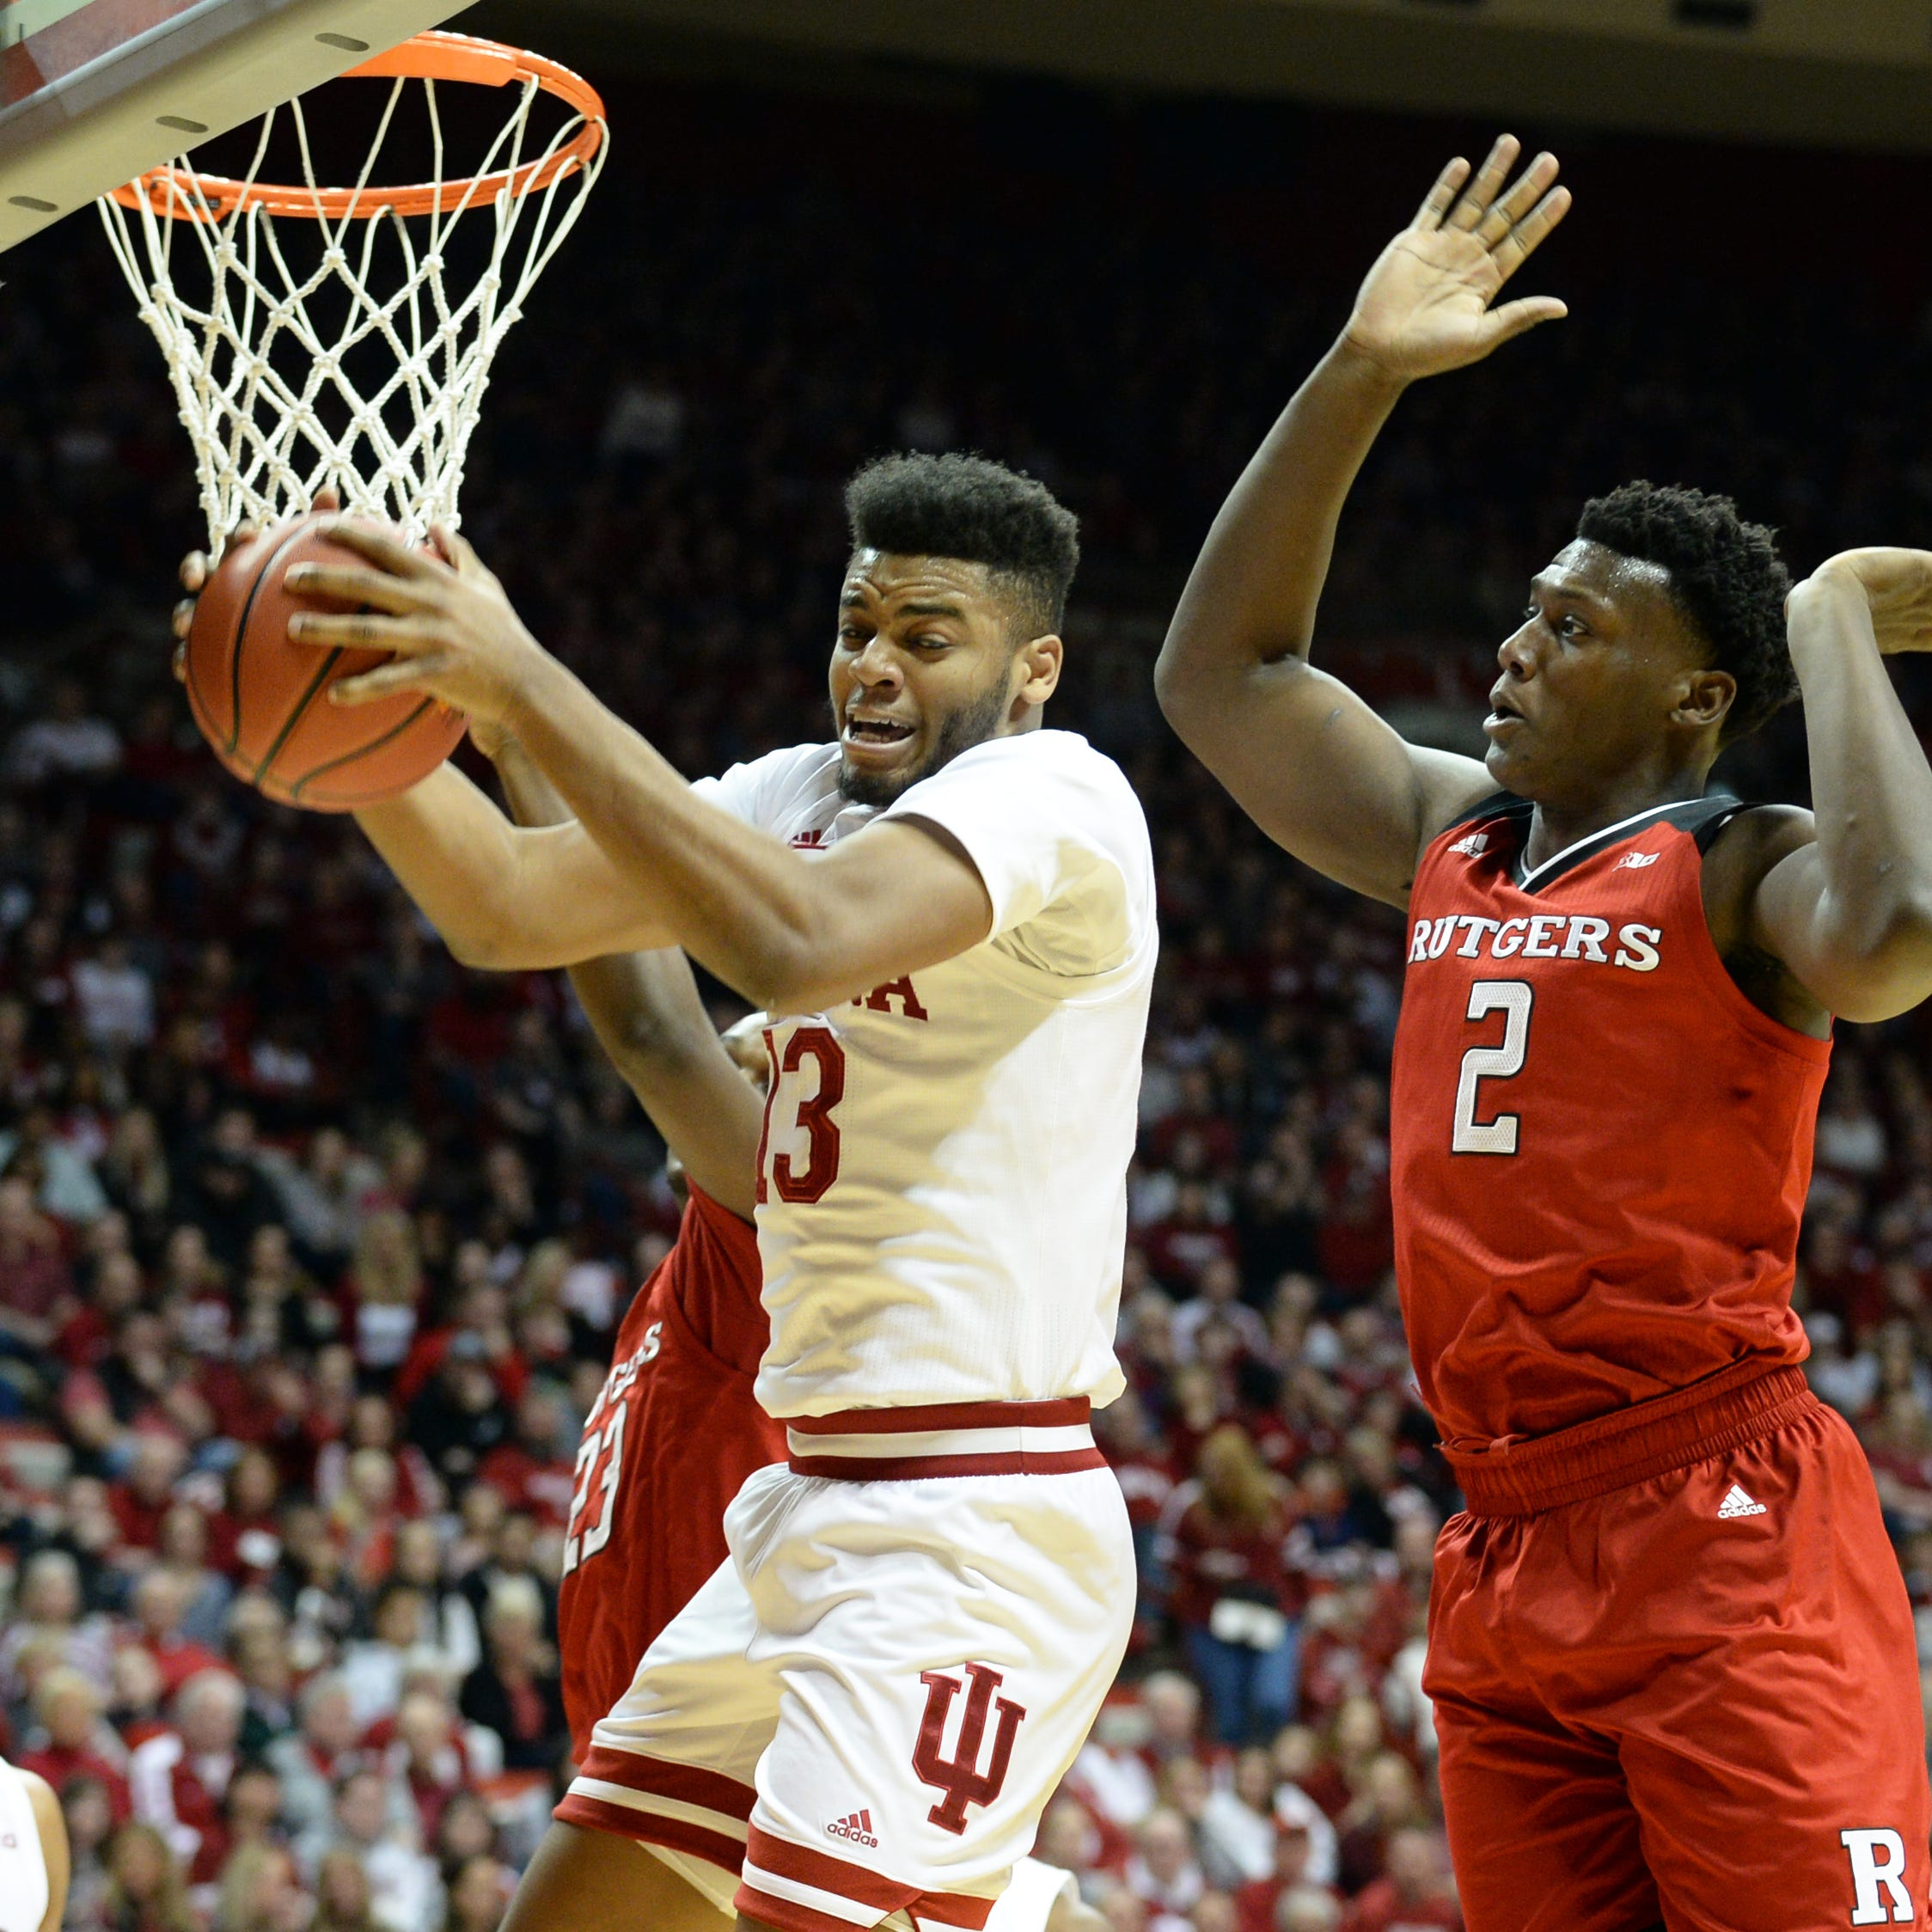 IU's NCAA tournament hopes *may* get boost from Big Ten switch to 20-game league schedule